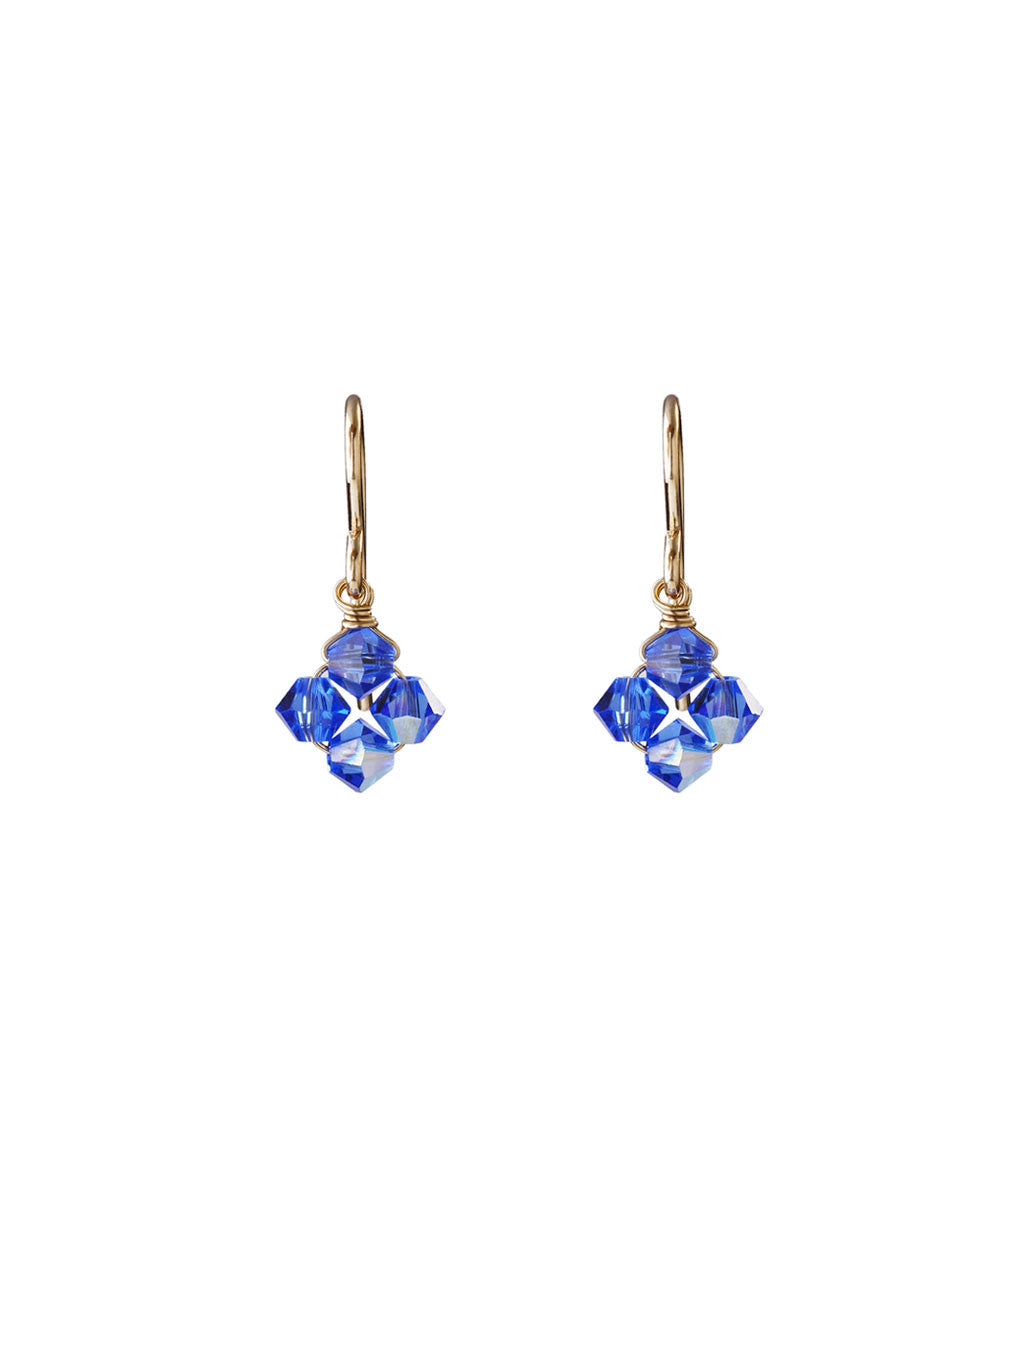 Crystal Diamond Clover Earrings - Capri Blue